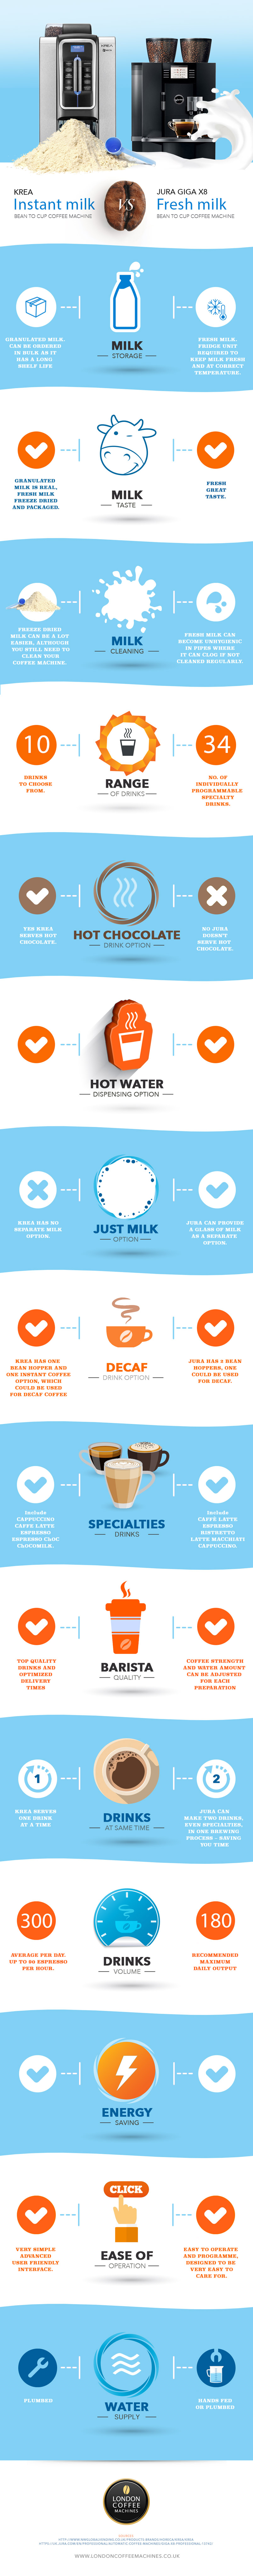 Fresh or Powdered Milk in Your Office Coffee?